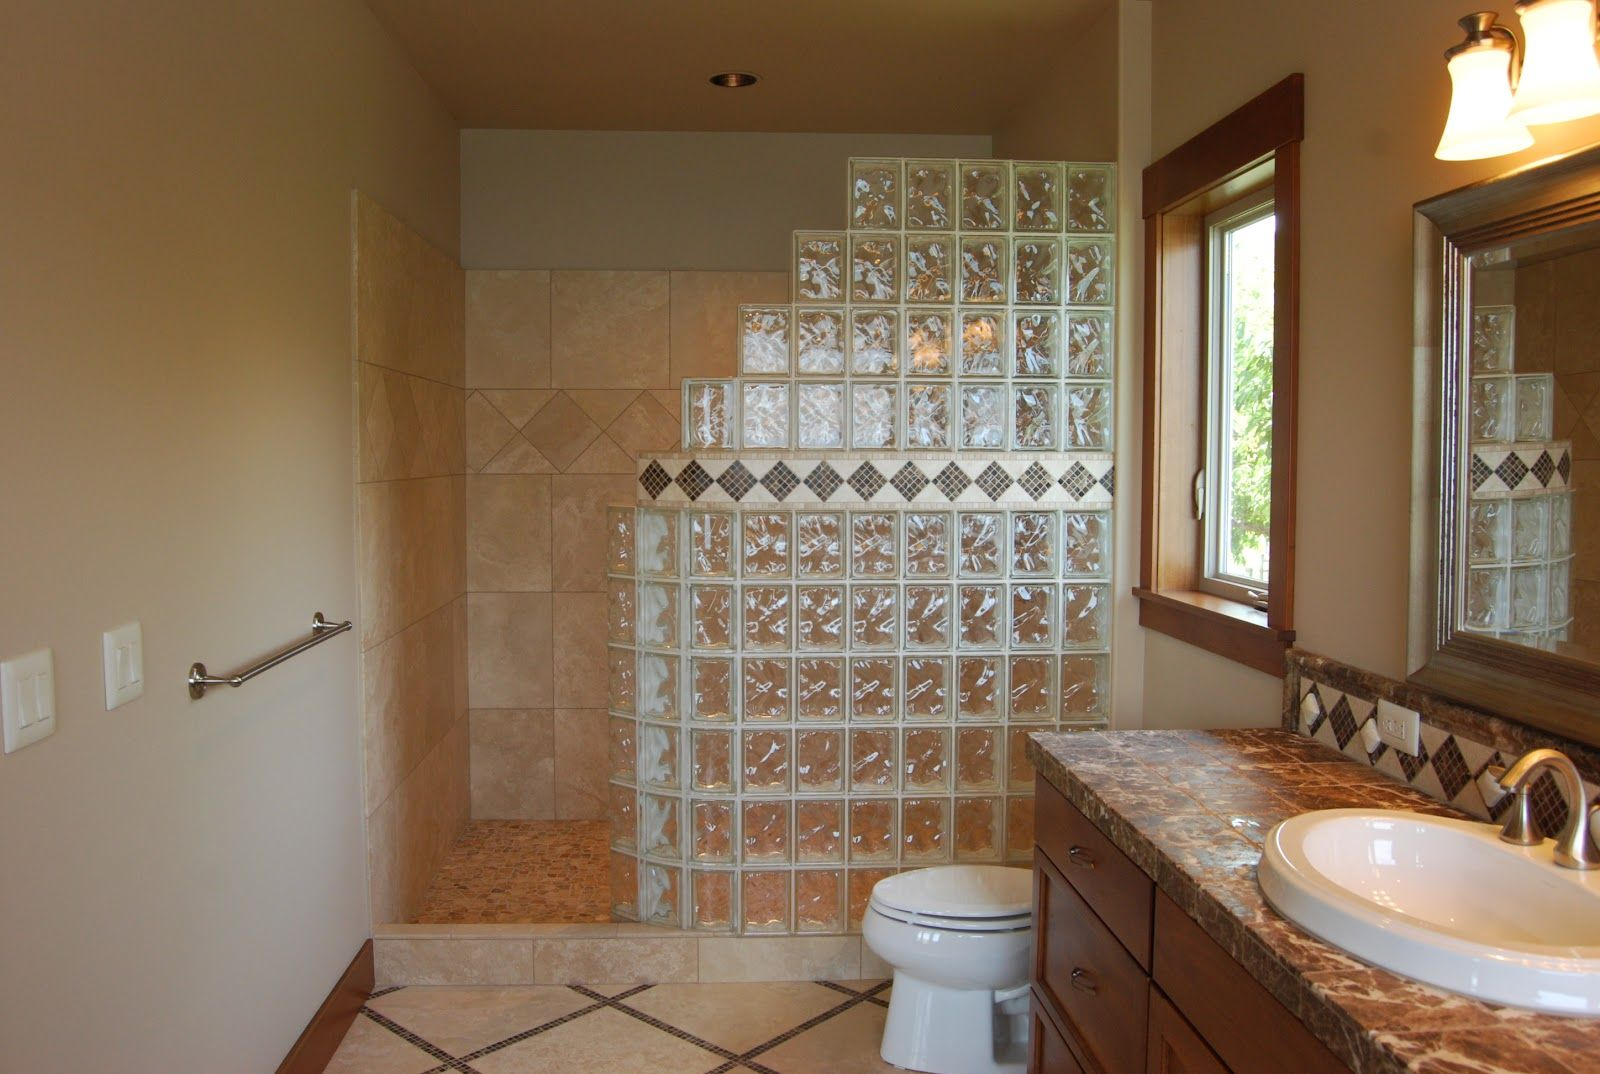 Glass Brick Shower Designs Seattle Glass Block Glass Block Shower Kits Install In 4 Easy